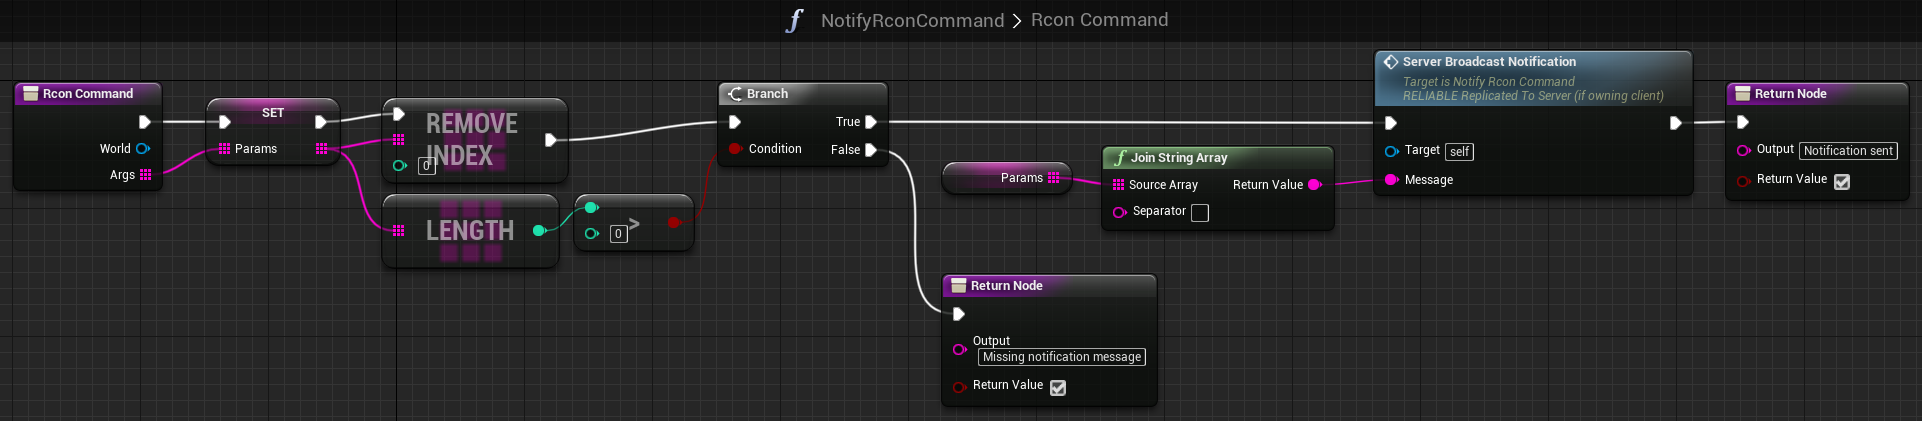 Implementation of RconCommand function